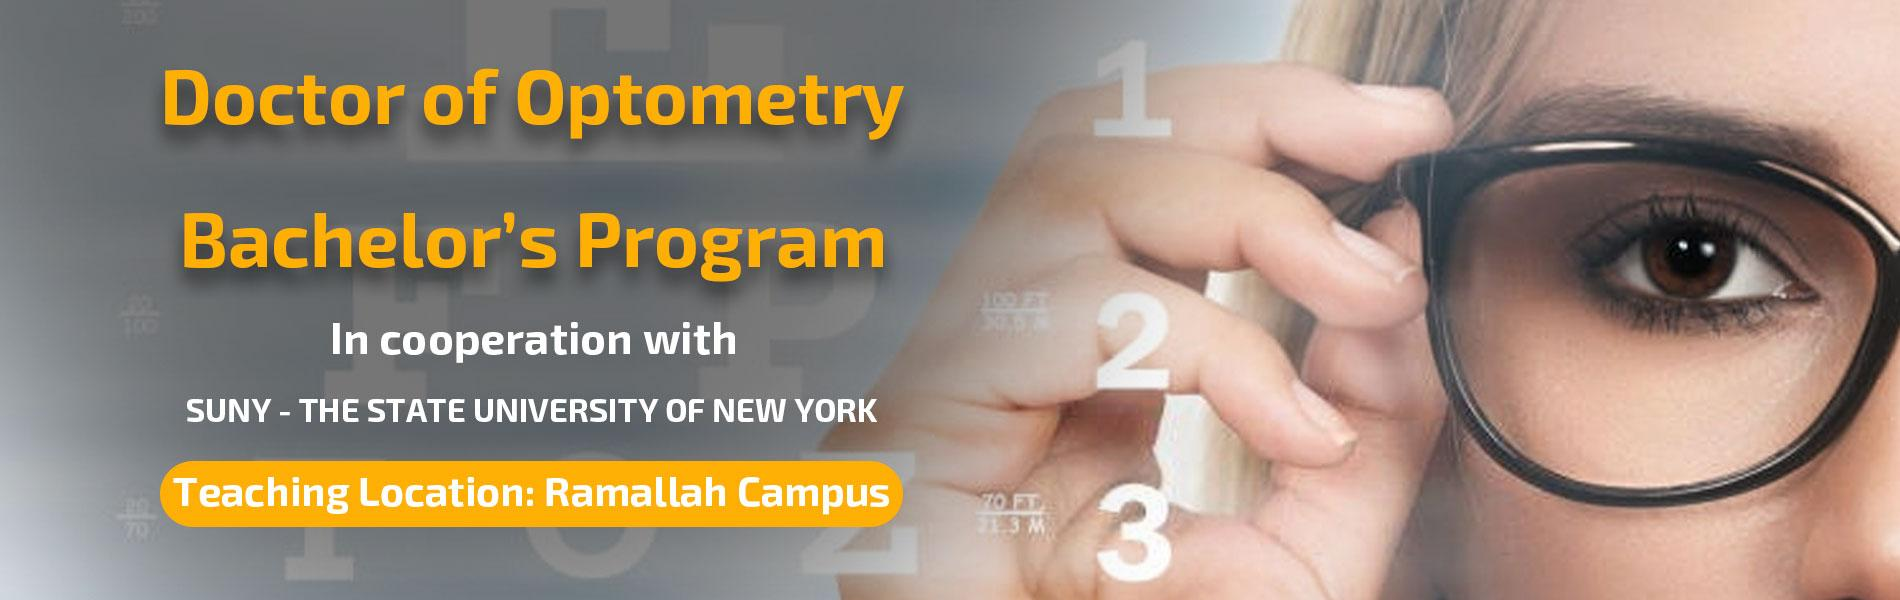 Start of Accepting Applications for Admission for Bachelor's Program in Doctor of Optometry for Spring Semester of Academic Year 2019/2020